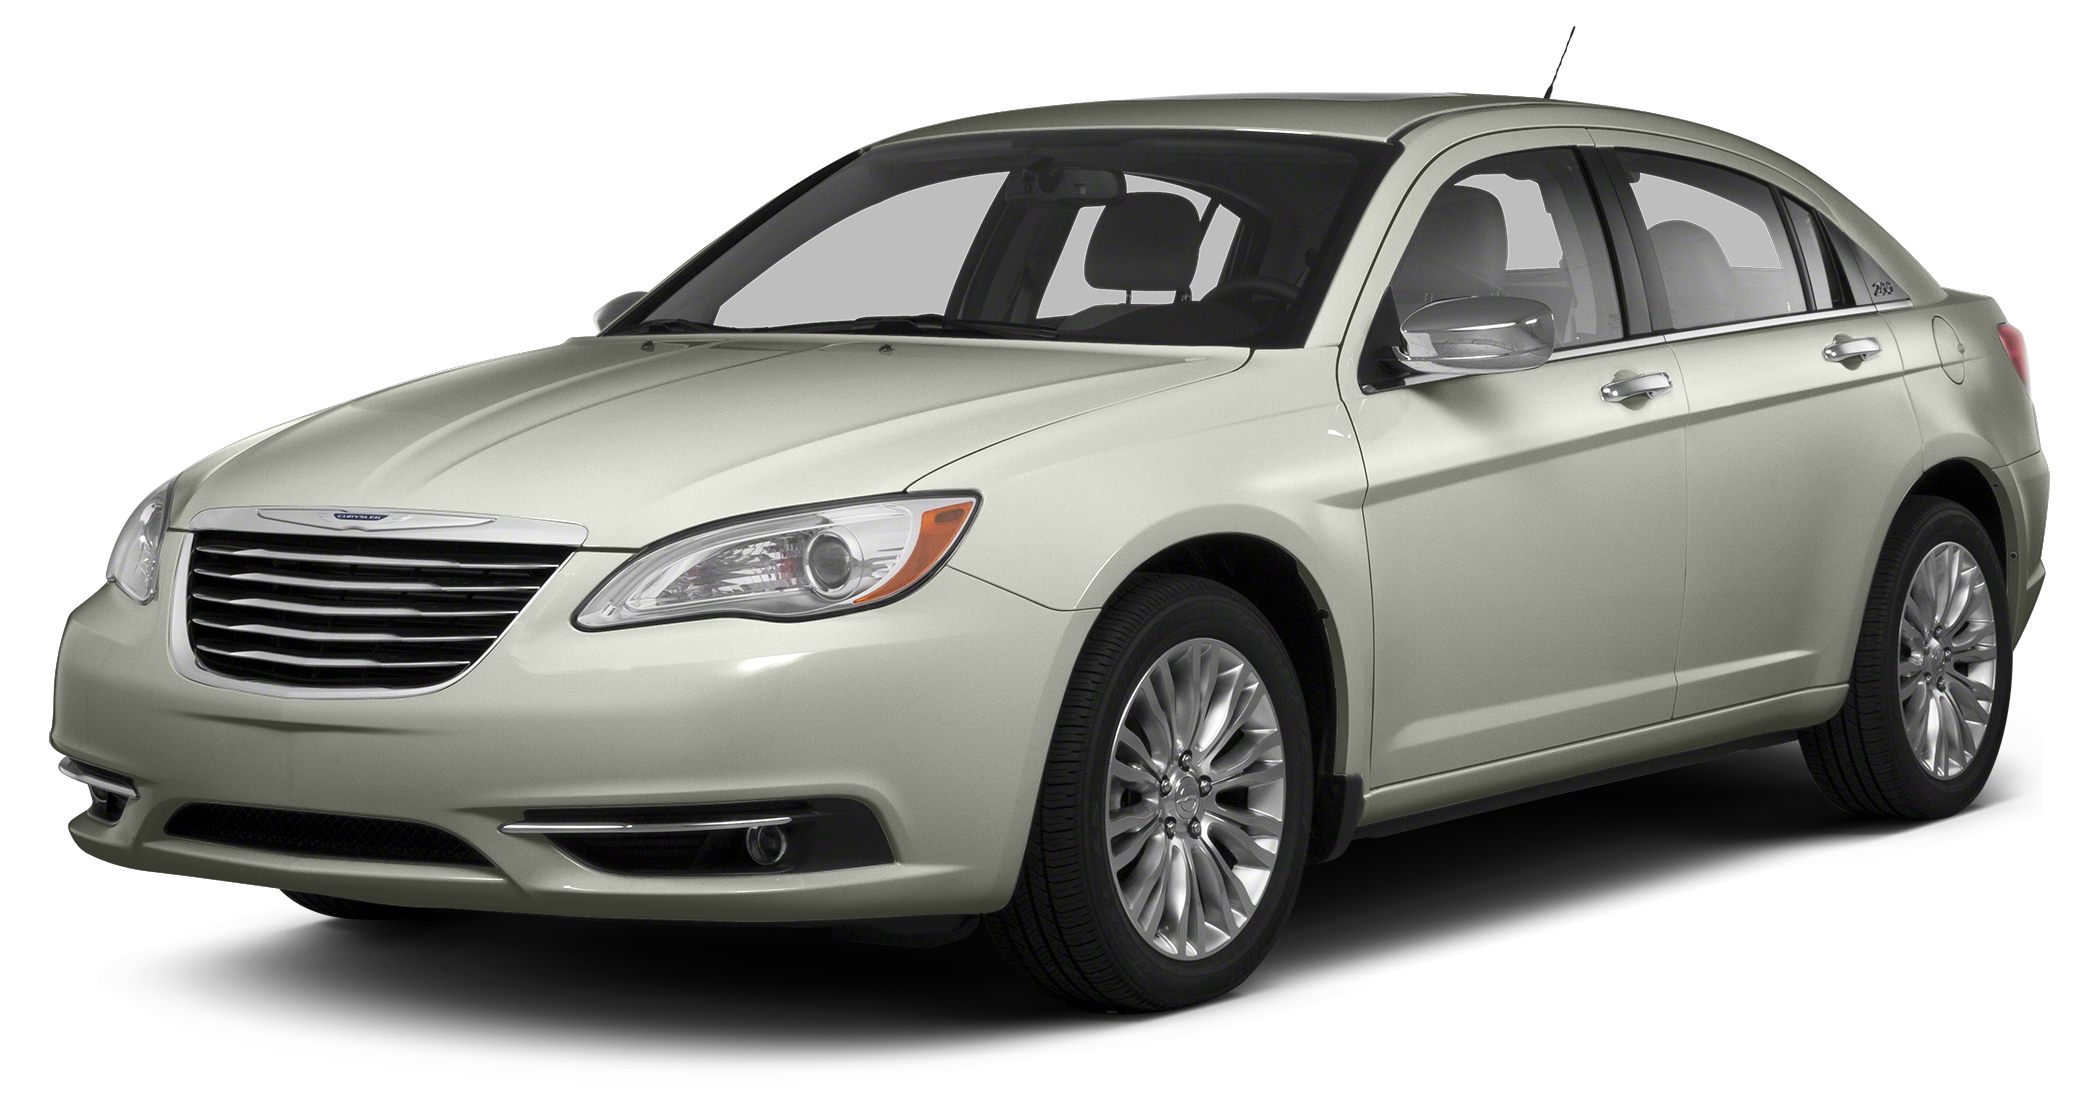 2013 Chrysler 200 Touring The exterior of this vehicle looks brand new The interior is clean and h